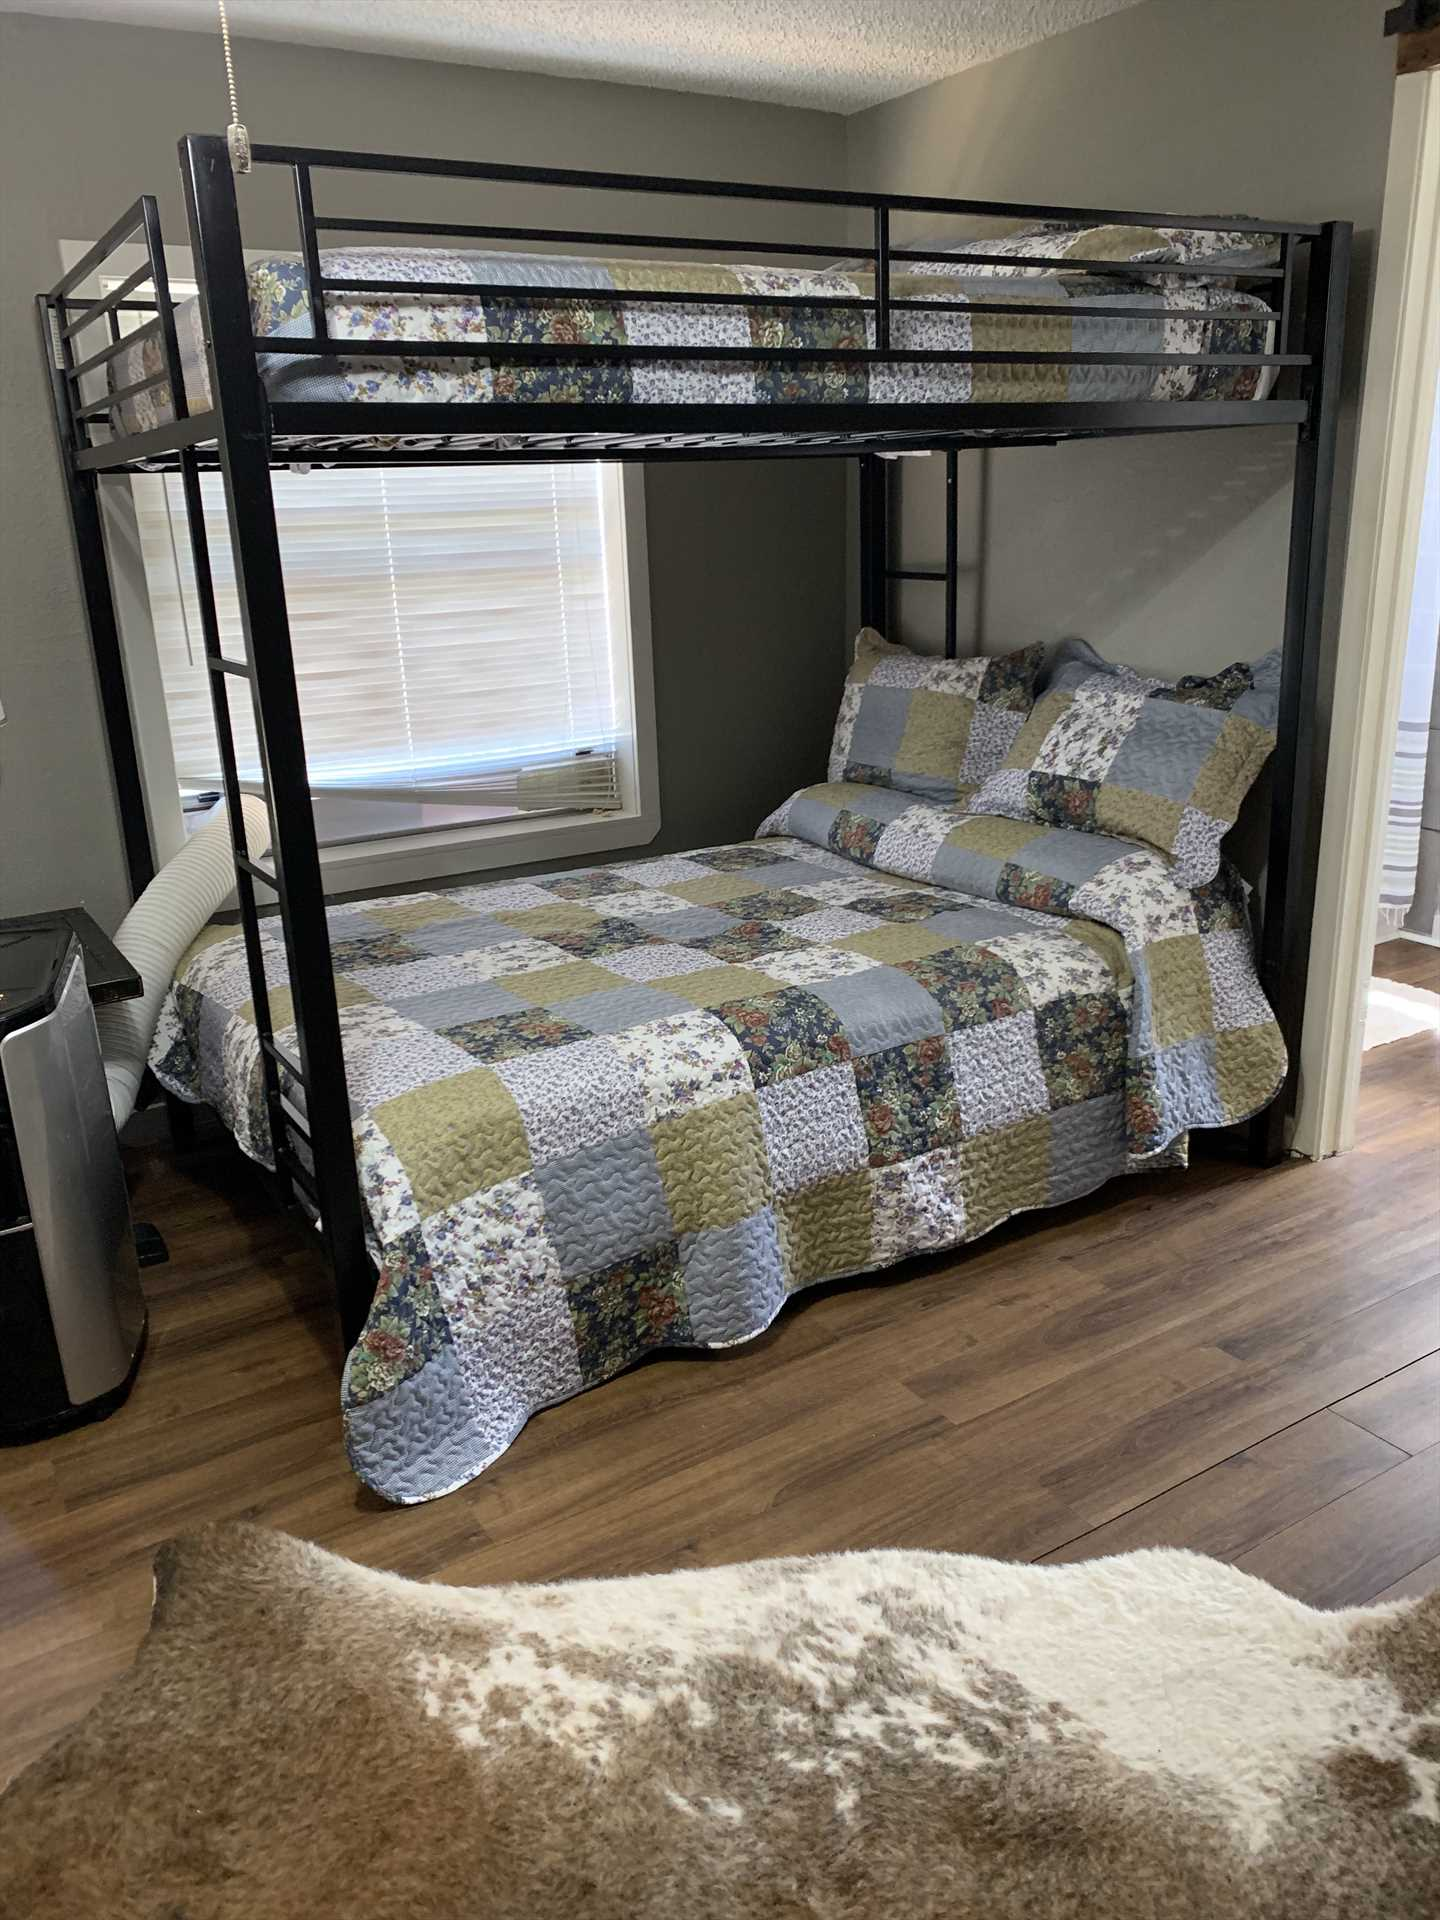 Soft and clean bed and bath linens are included at the cabin for all our guests! There's also a washer/dryer combo for your convenience.